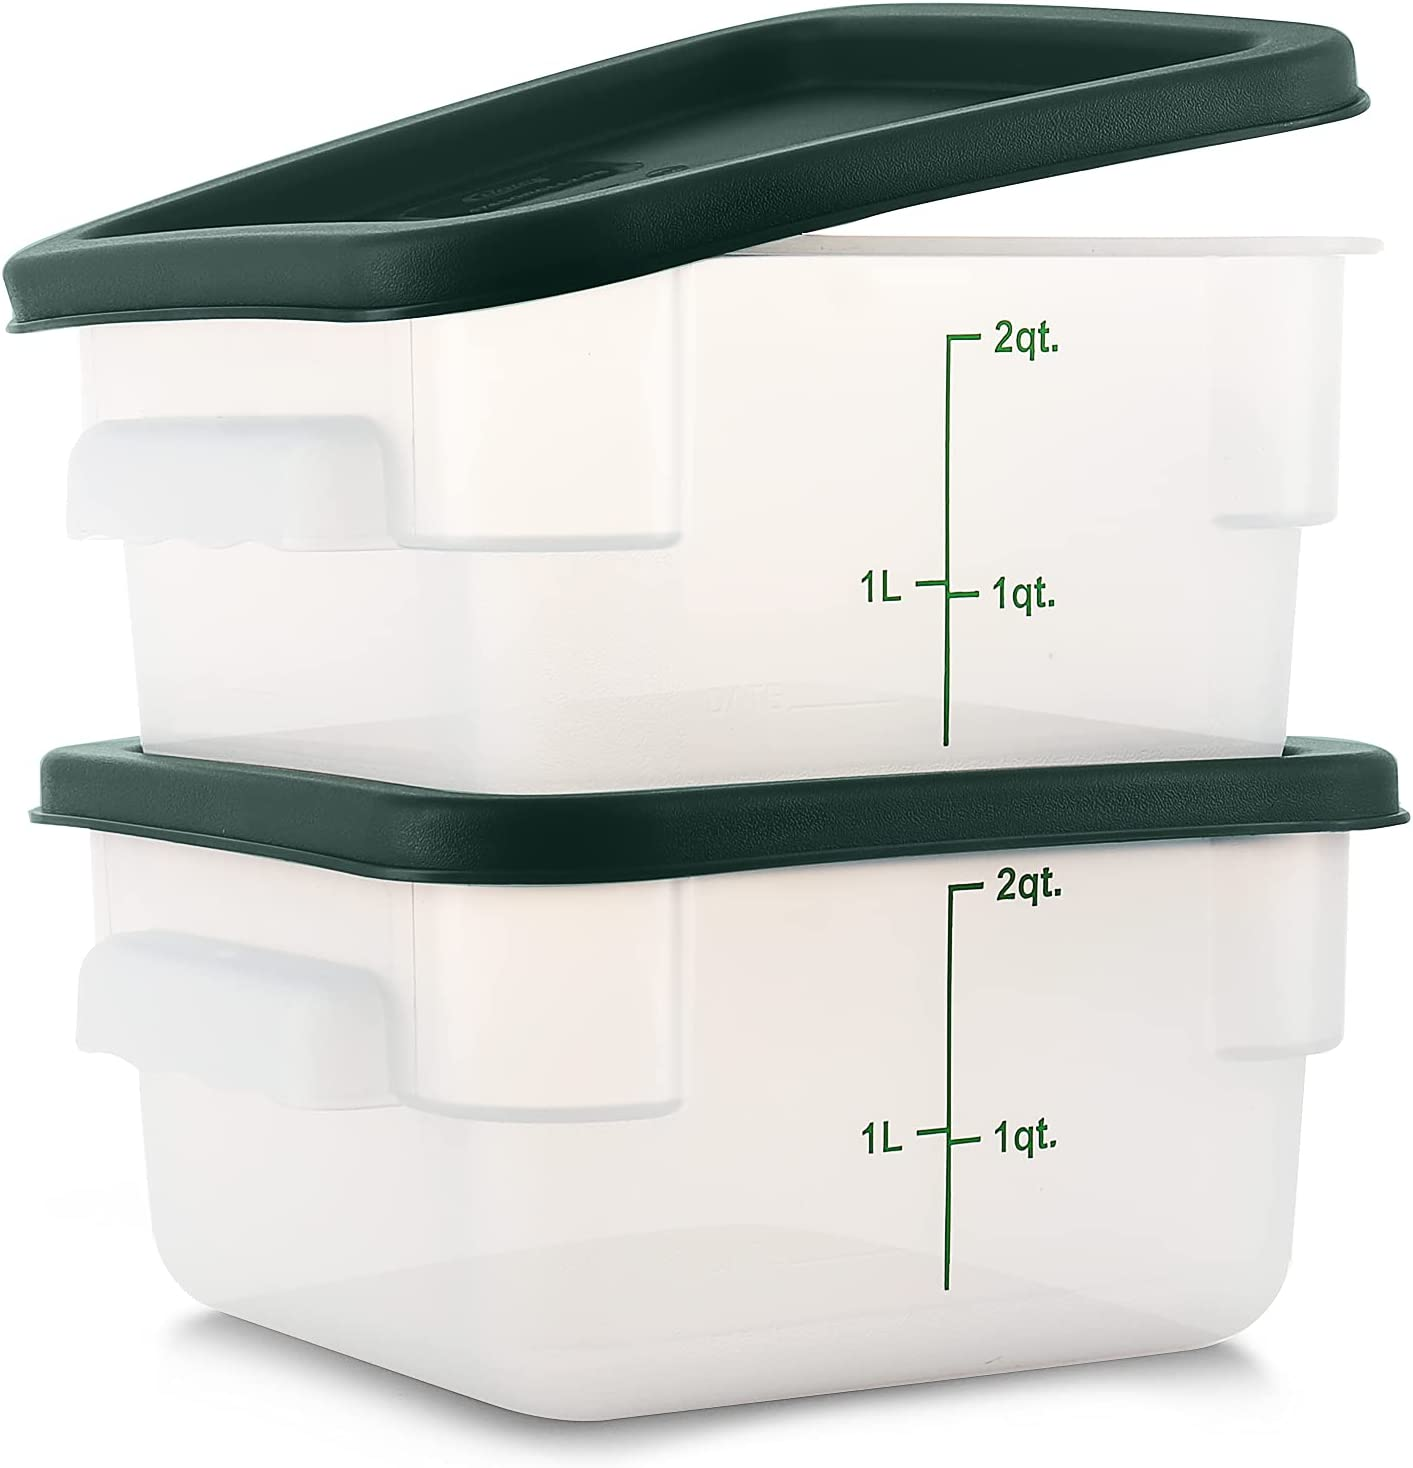 Tafura [Pack of 2] 2 Qt Translucent Square Food Storage Container with Lid, Commercial Grade Plastic Brining Bucket with Cover 2 Quart Sous Vide, Food Prep, Brine Canister, BPA Free